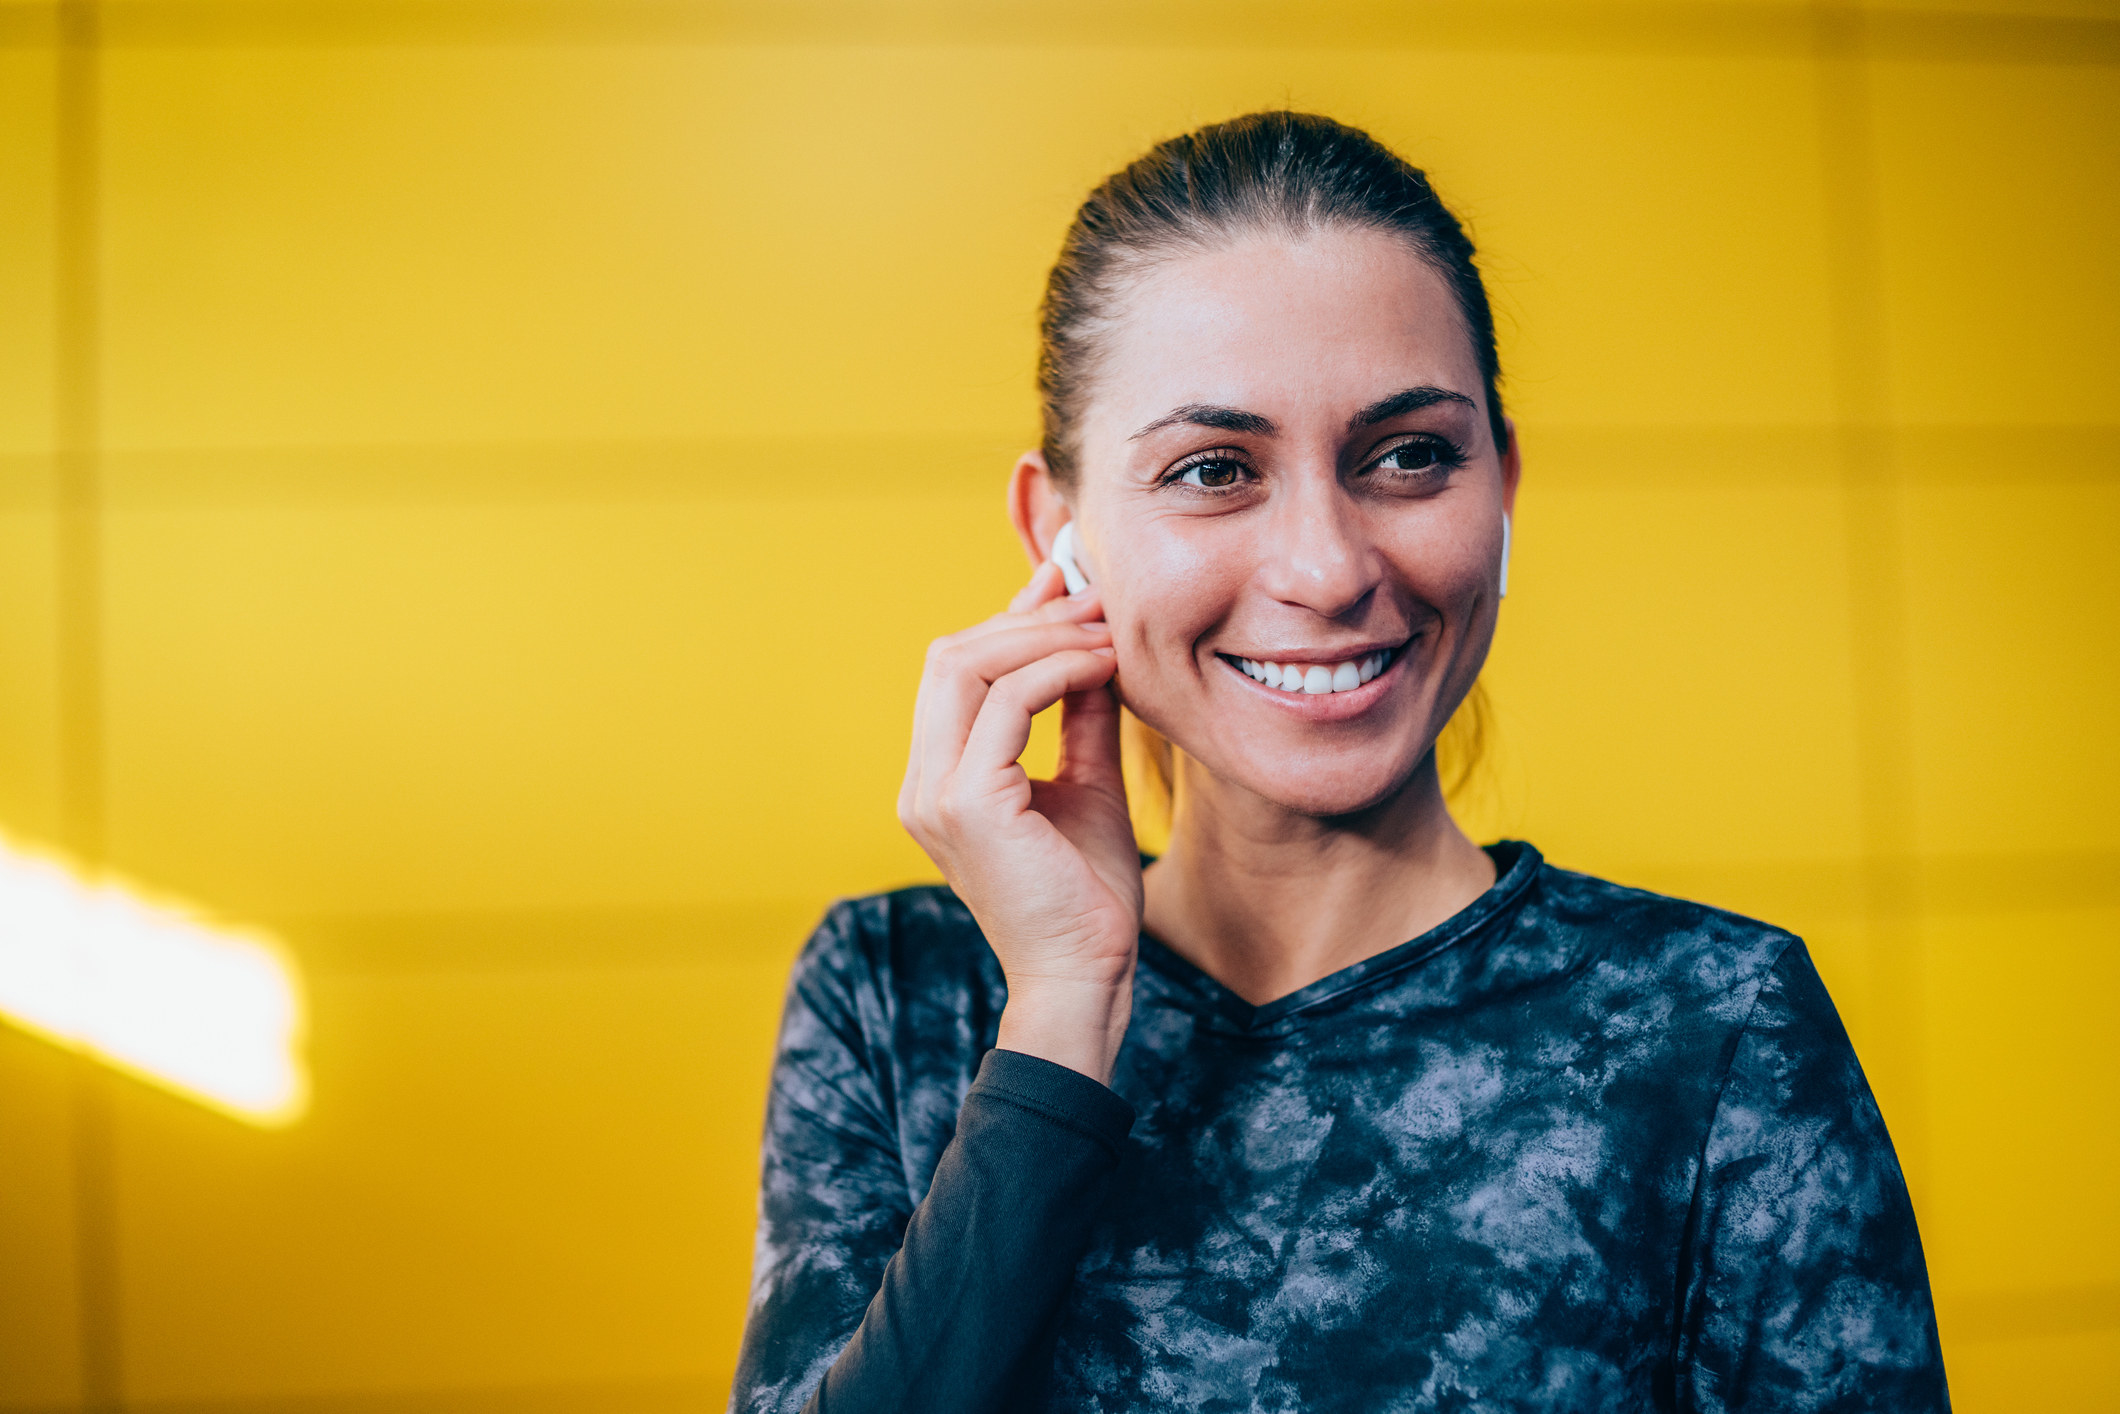 A woman smiling and putting her AirPod in